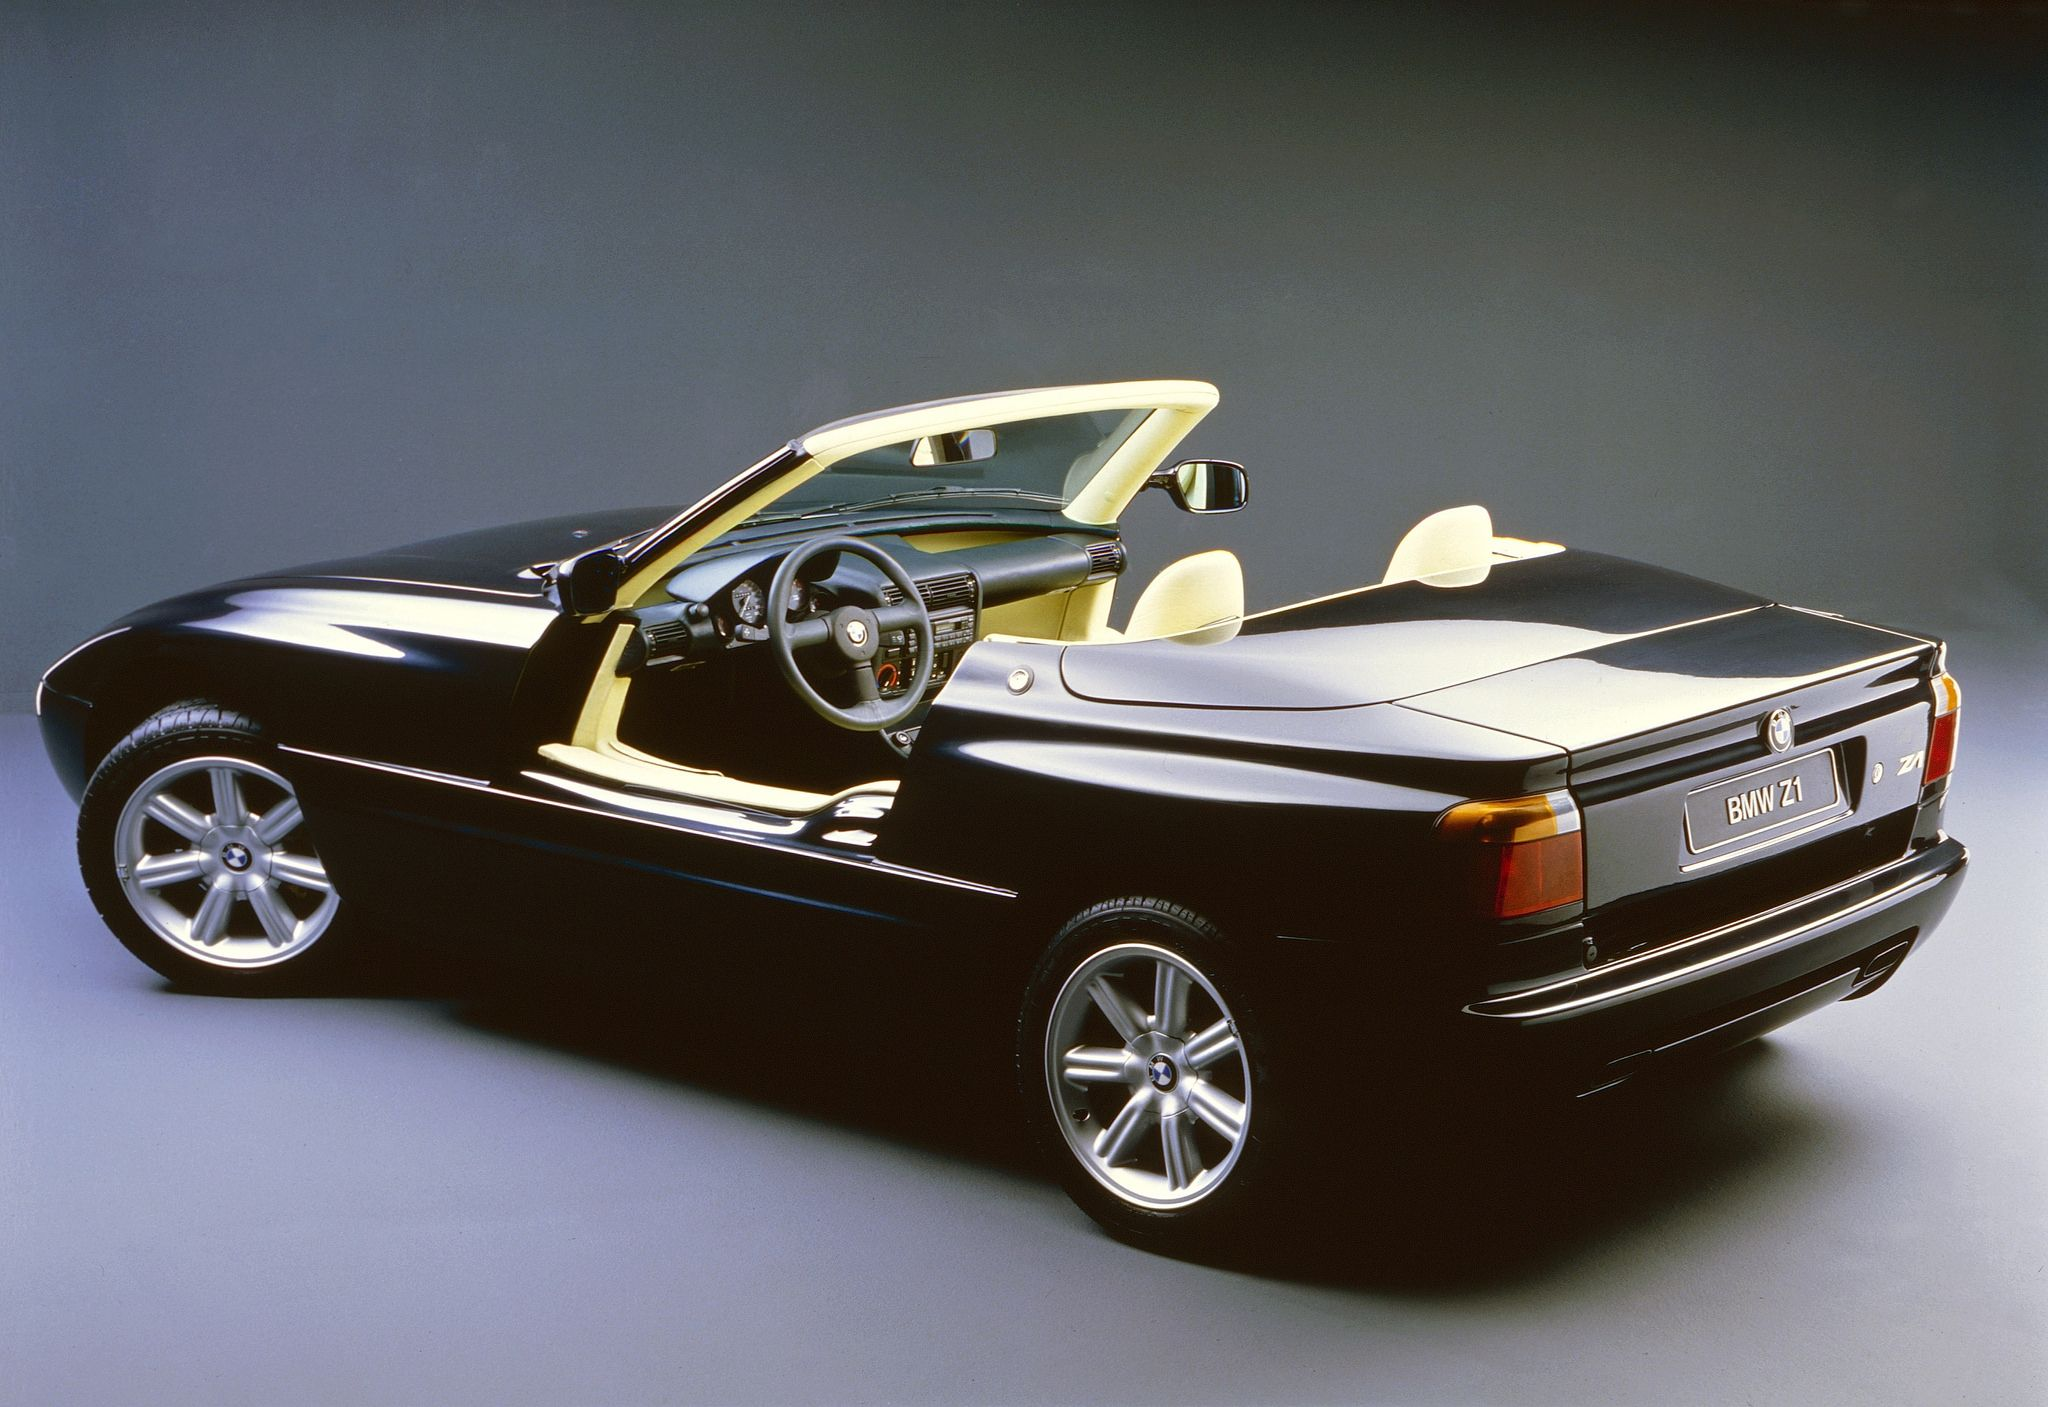 3e2dc9e7b895421fb4d155ac872f2907 Stunning Bmw Z1 Hardtop for Sale Cars Trend